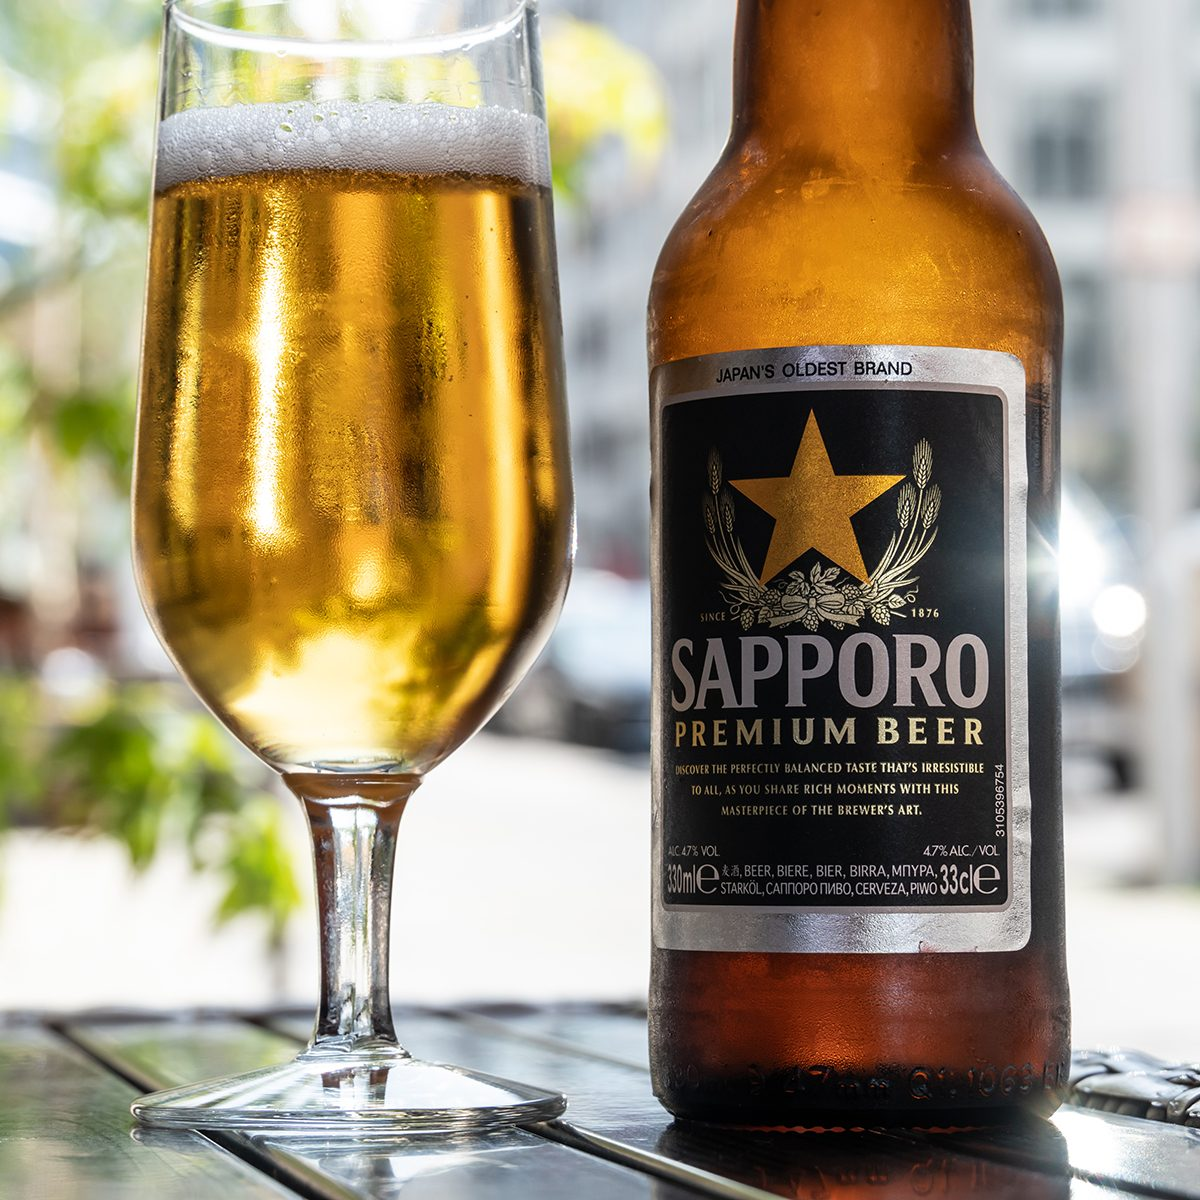 A glass full with beer next to a bottle of Sapporo Premium Beer on the table